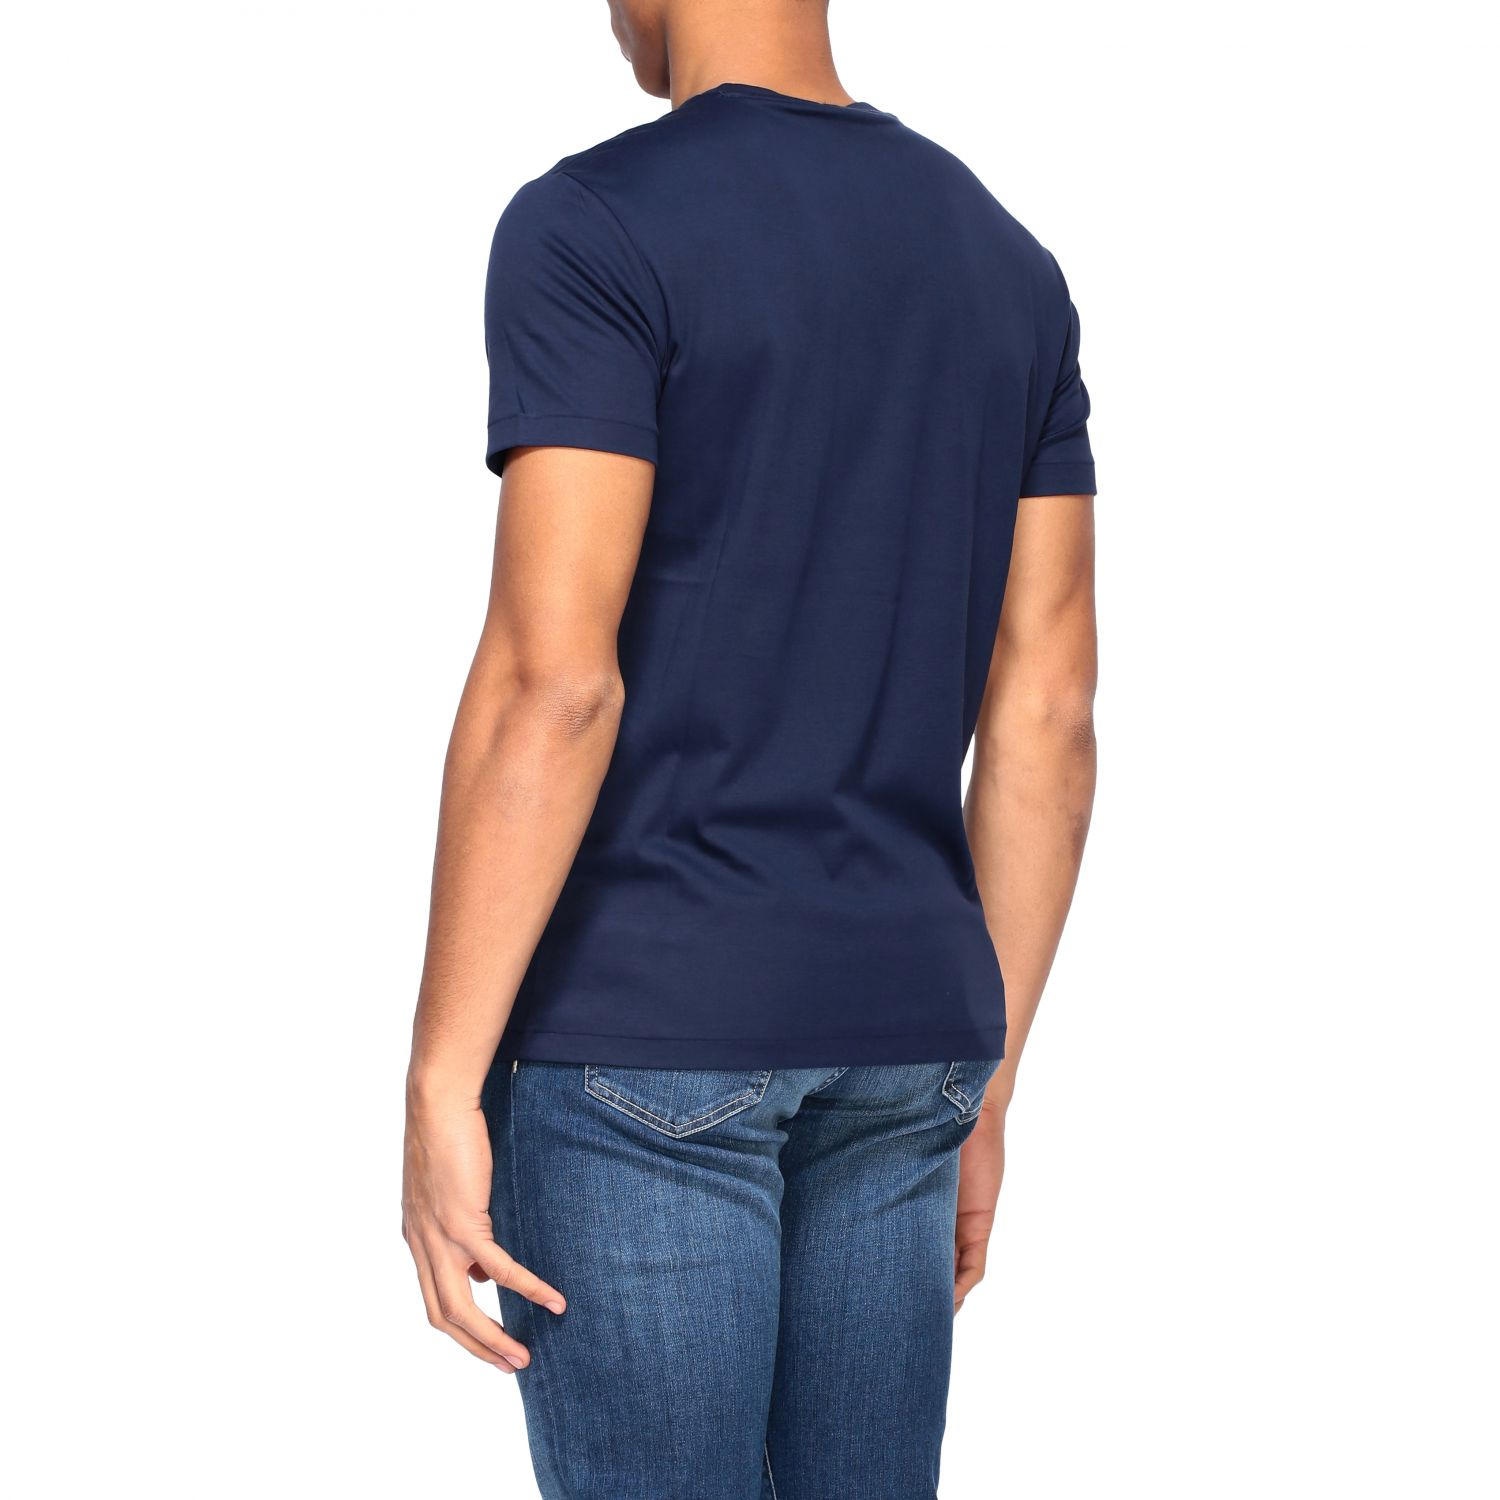 T-shirt Polo Ralph Lauren a girocollo con logo blue navy 3